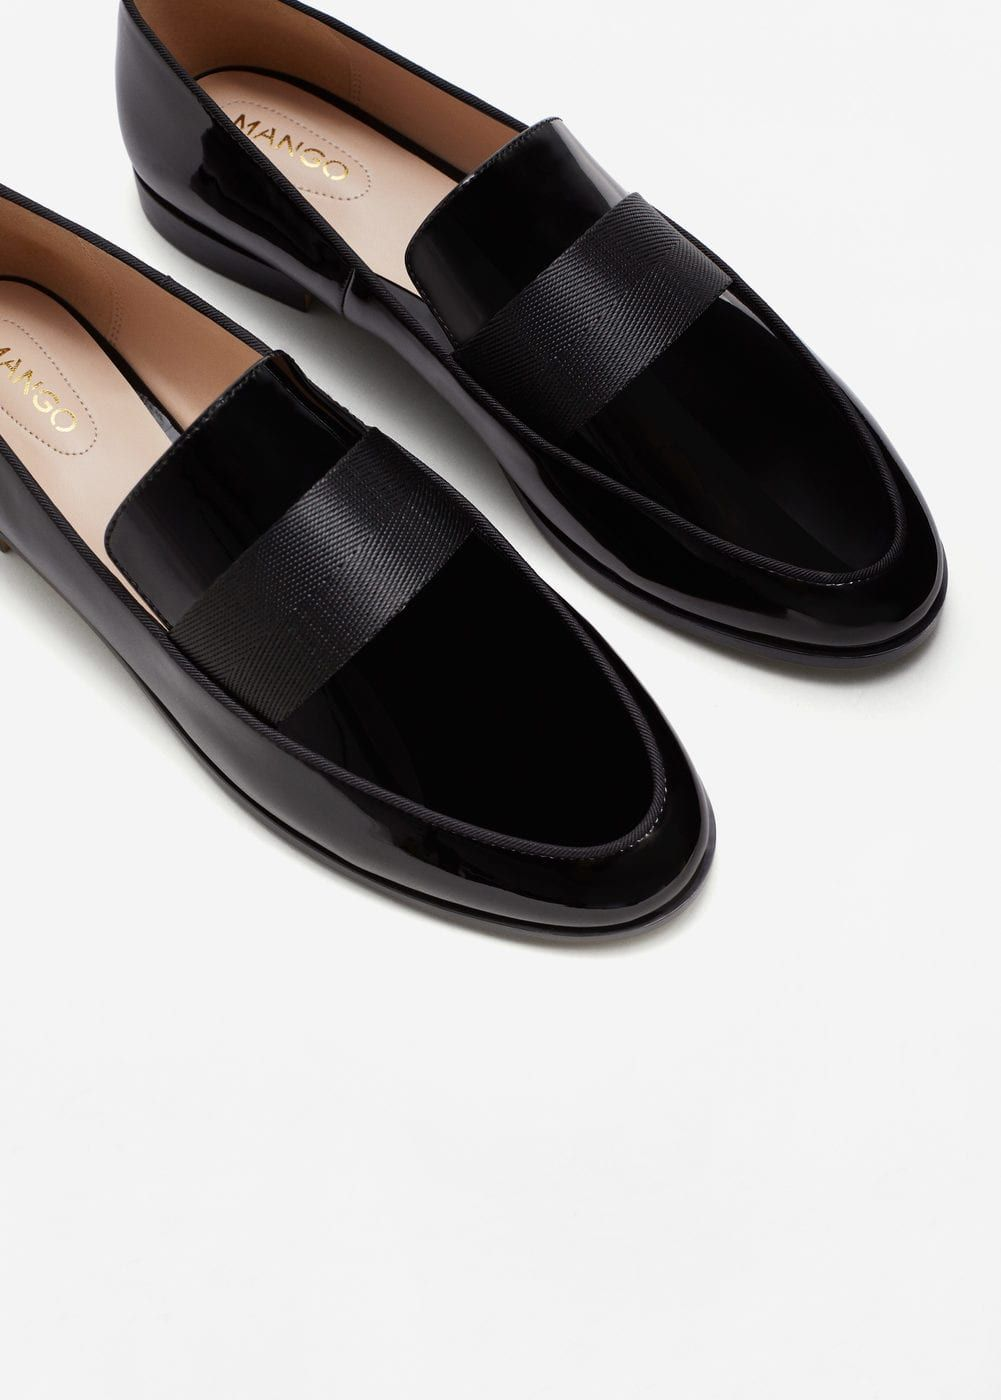 caaae1896f8 Patent loafers - Women